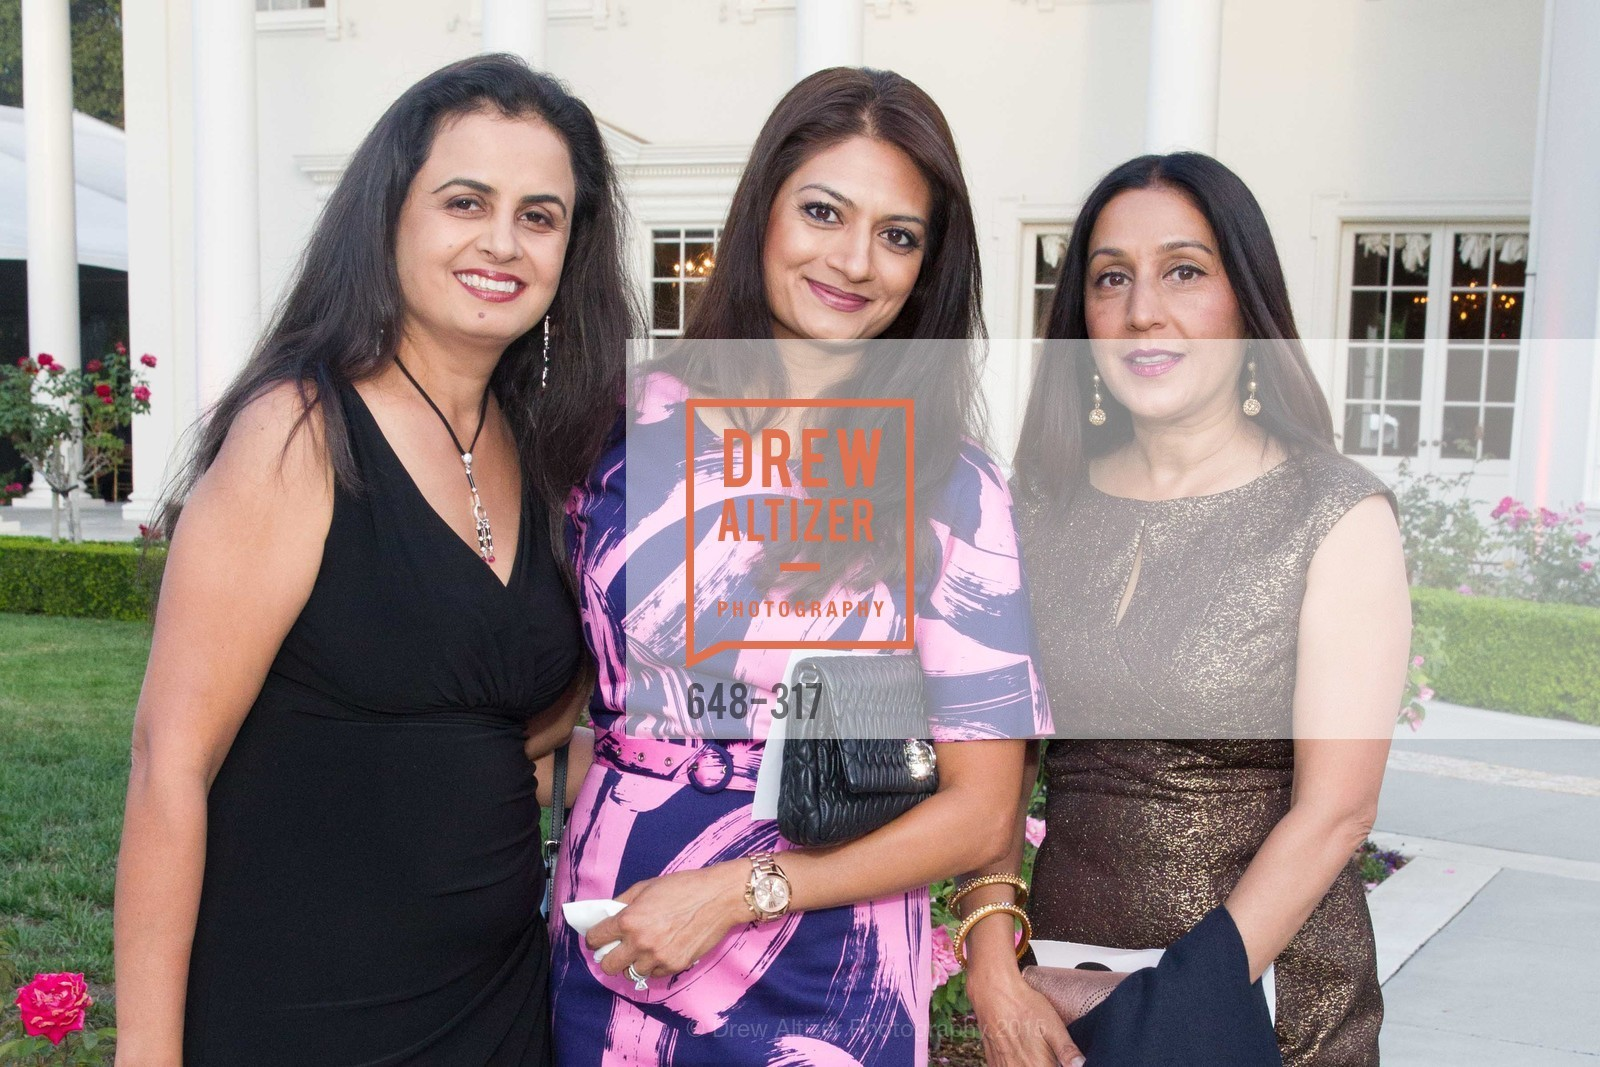 Mallika Kohli, Heena Maheshwari, Sumati Patel-Pareek, CuriOdyssey At Coyote Point 2015 Gala, CuriOdyssey. 401 El Cerrito Avenue, September 26th, 2015,Drew Altizer, Drew Altizer Photography, full-service event agency, private events, San Francisco photographer, photographer California